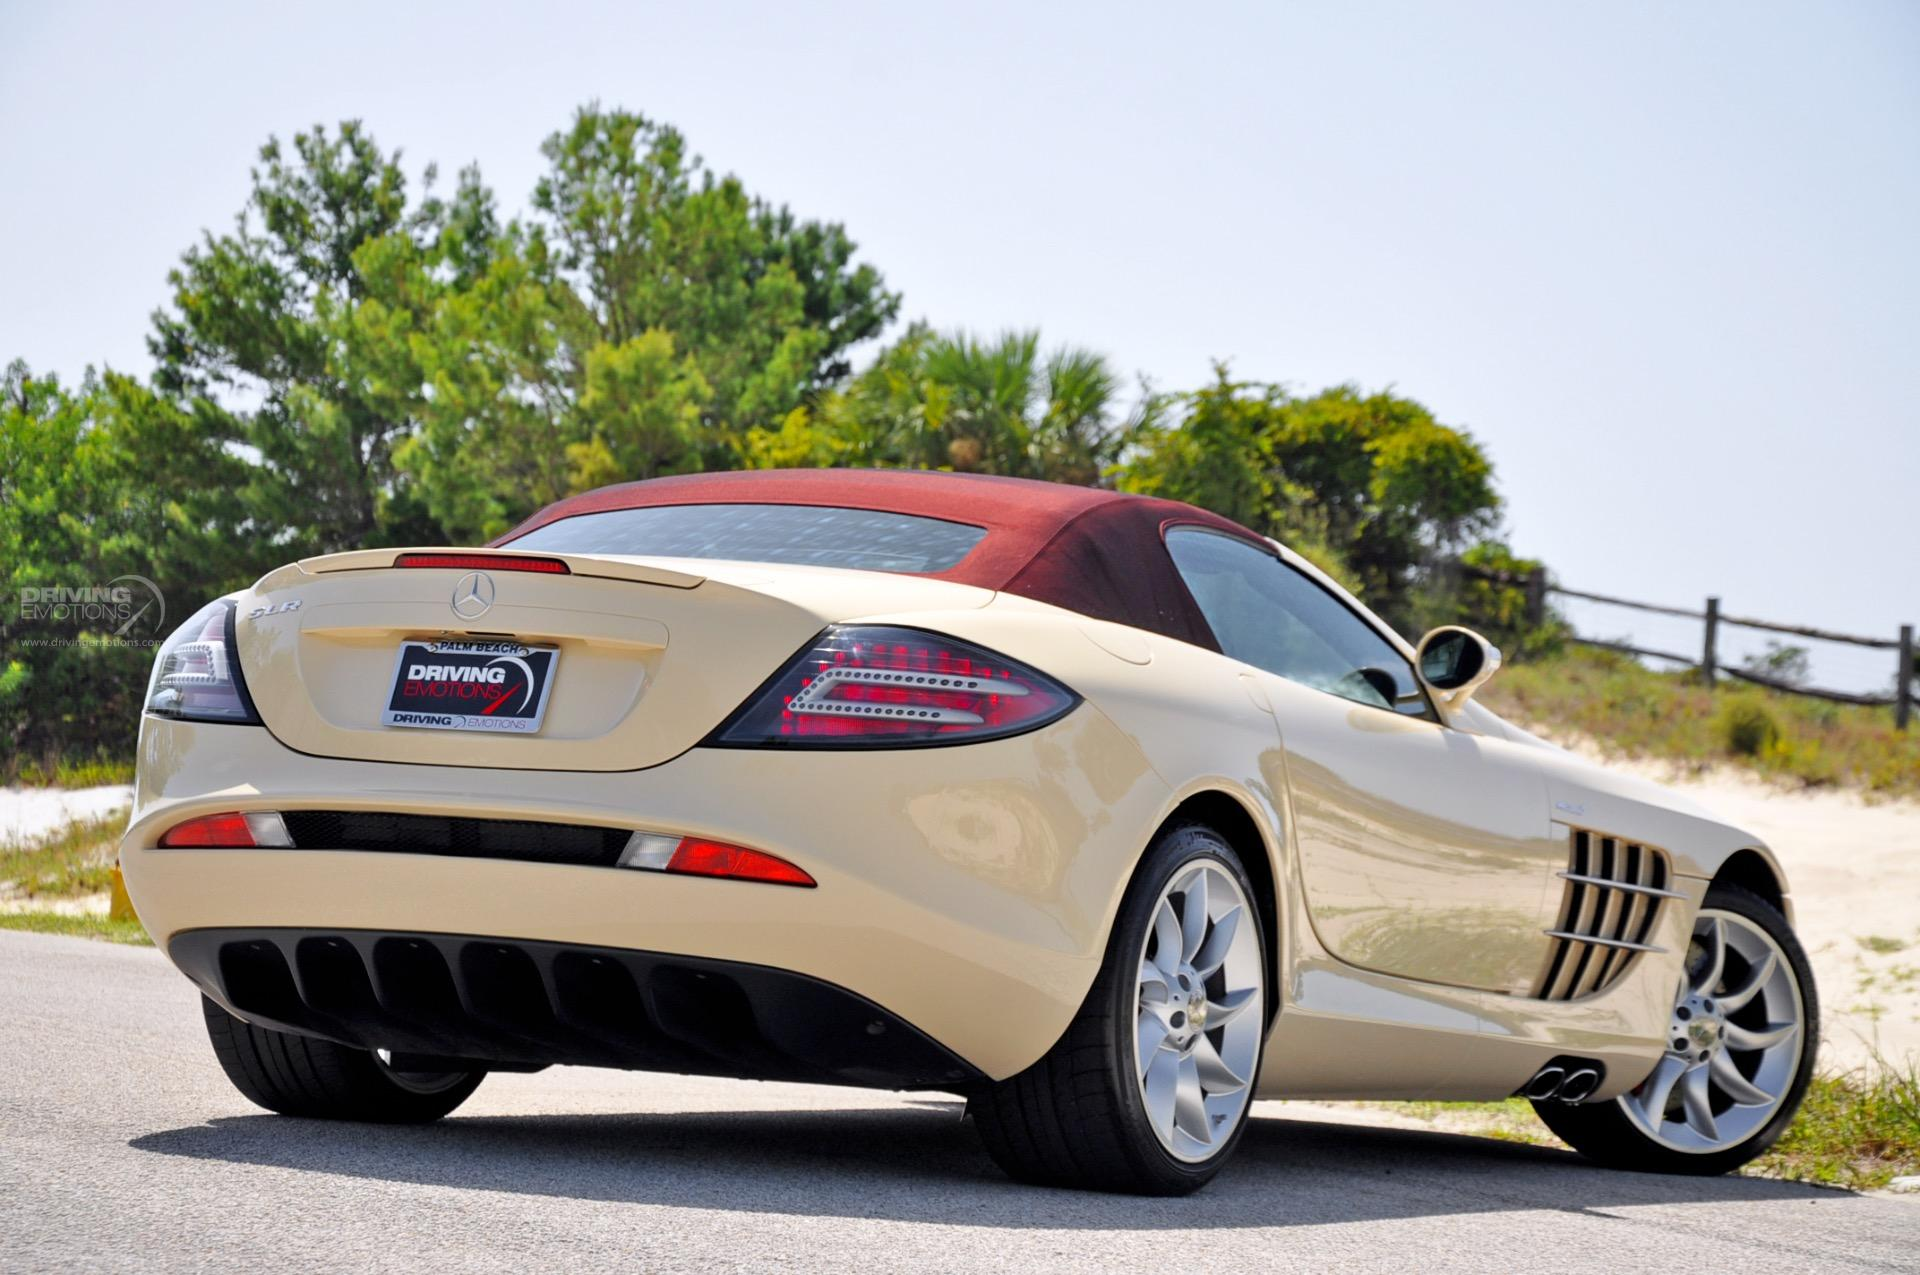 2009 mercedes benz slr mclaren roadster convertible 2 door. Black Bedroom Furniture Sets. Home Design Ideas